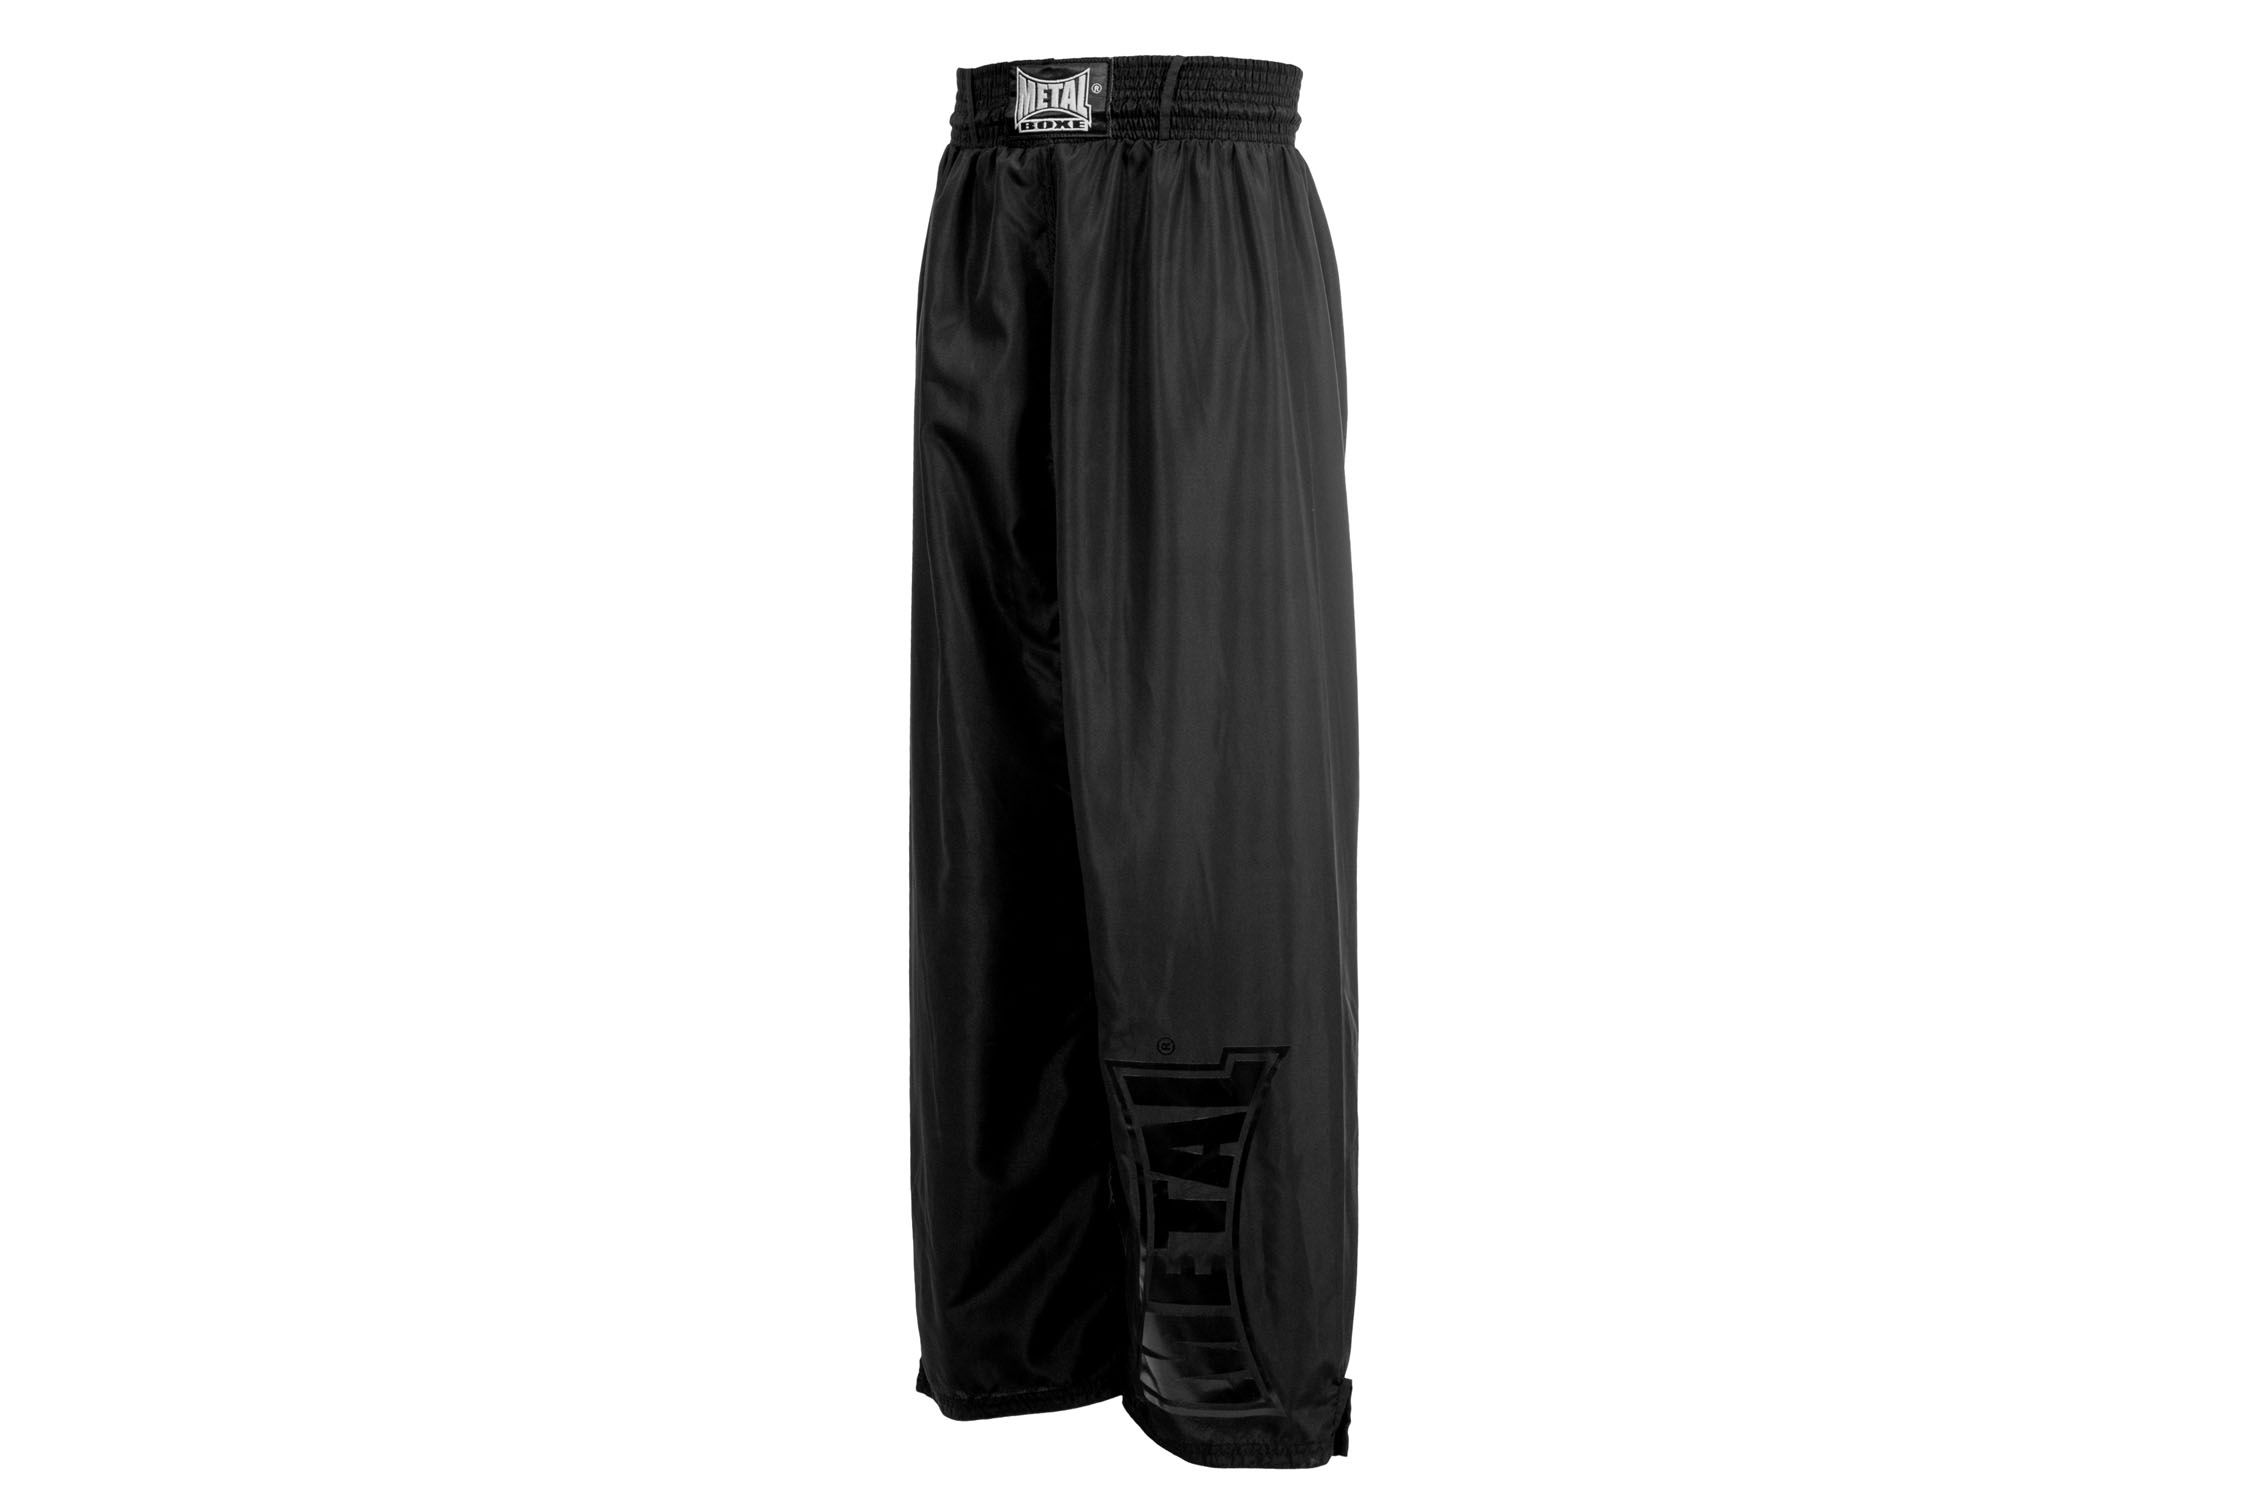 Pantalon de full contact Black light Métal boxe